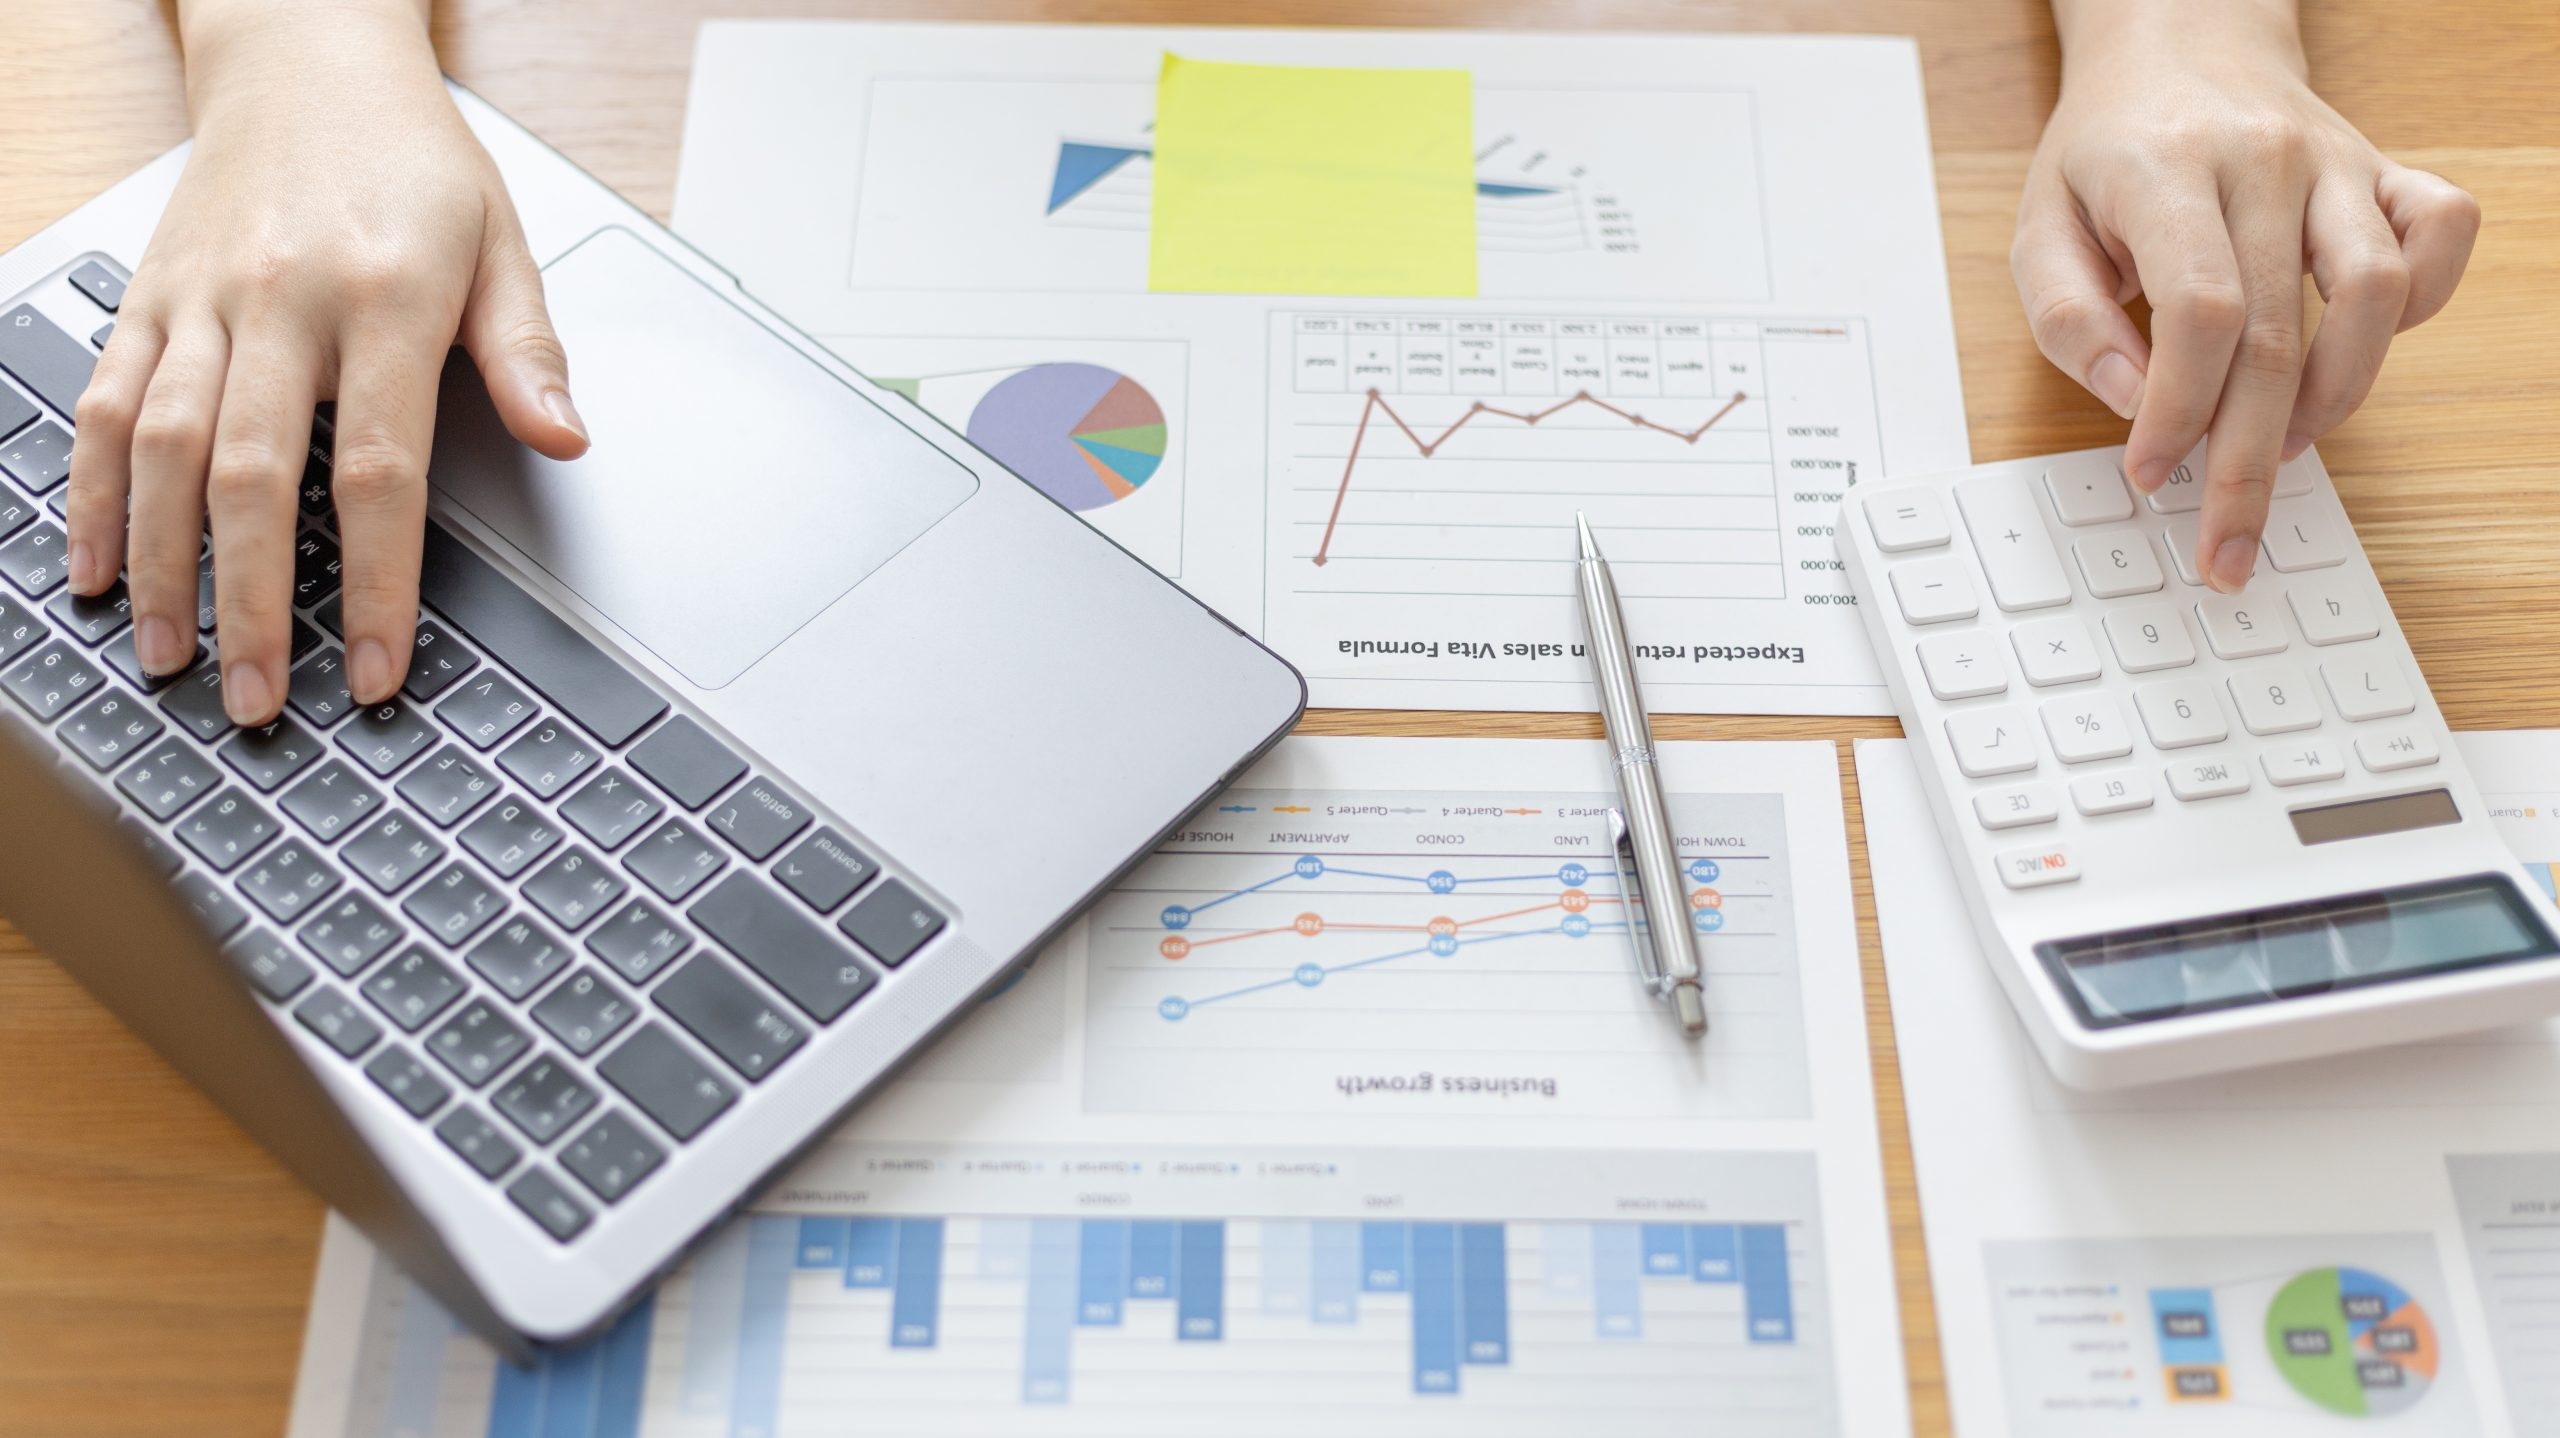 Financial businesswomen use laptop to analyze marketing strategies and real estate data to reduce company taxes for their customers, Calculate data with a calculator, Accounting and Tax concept.